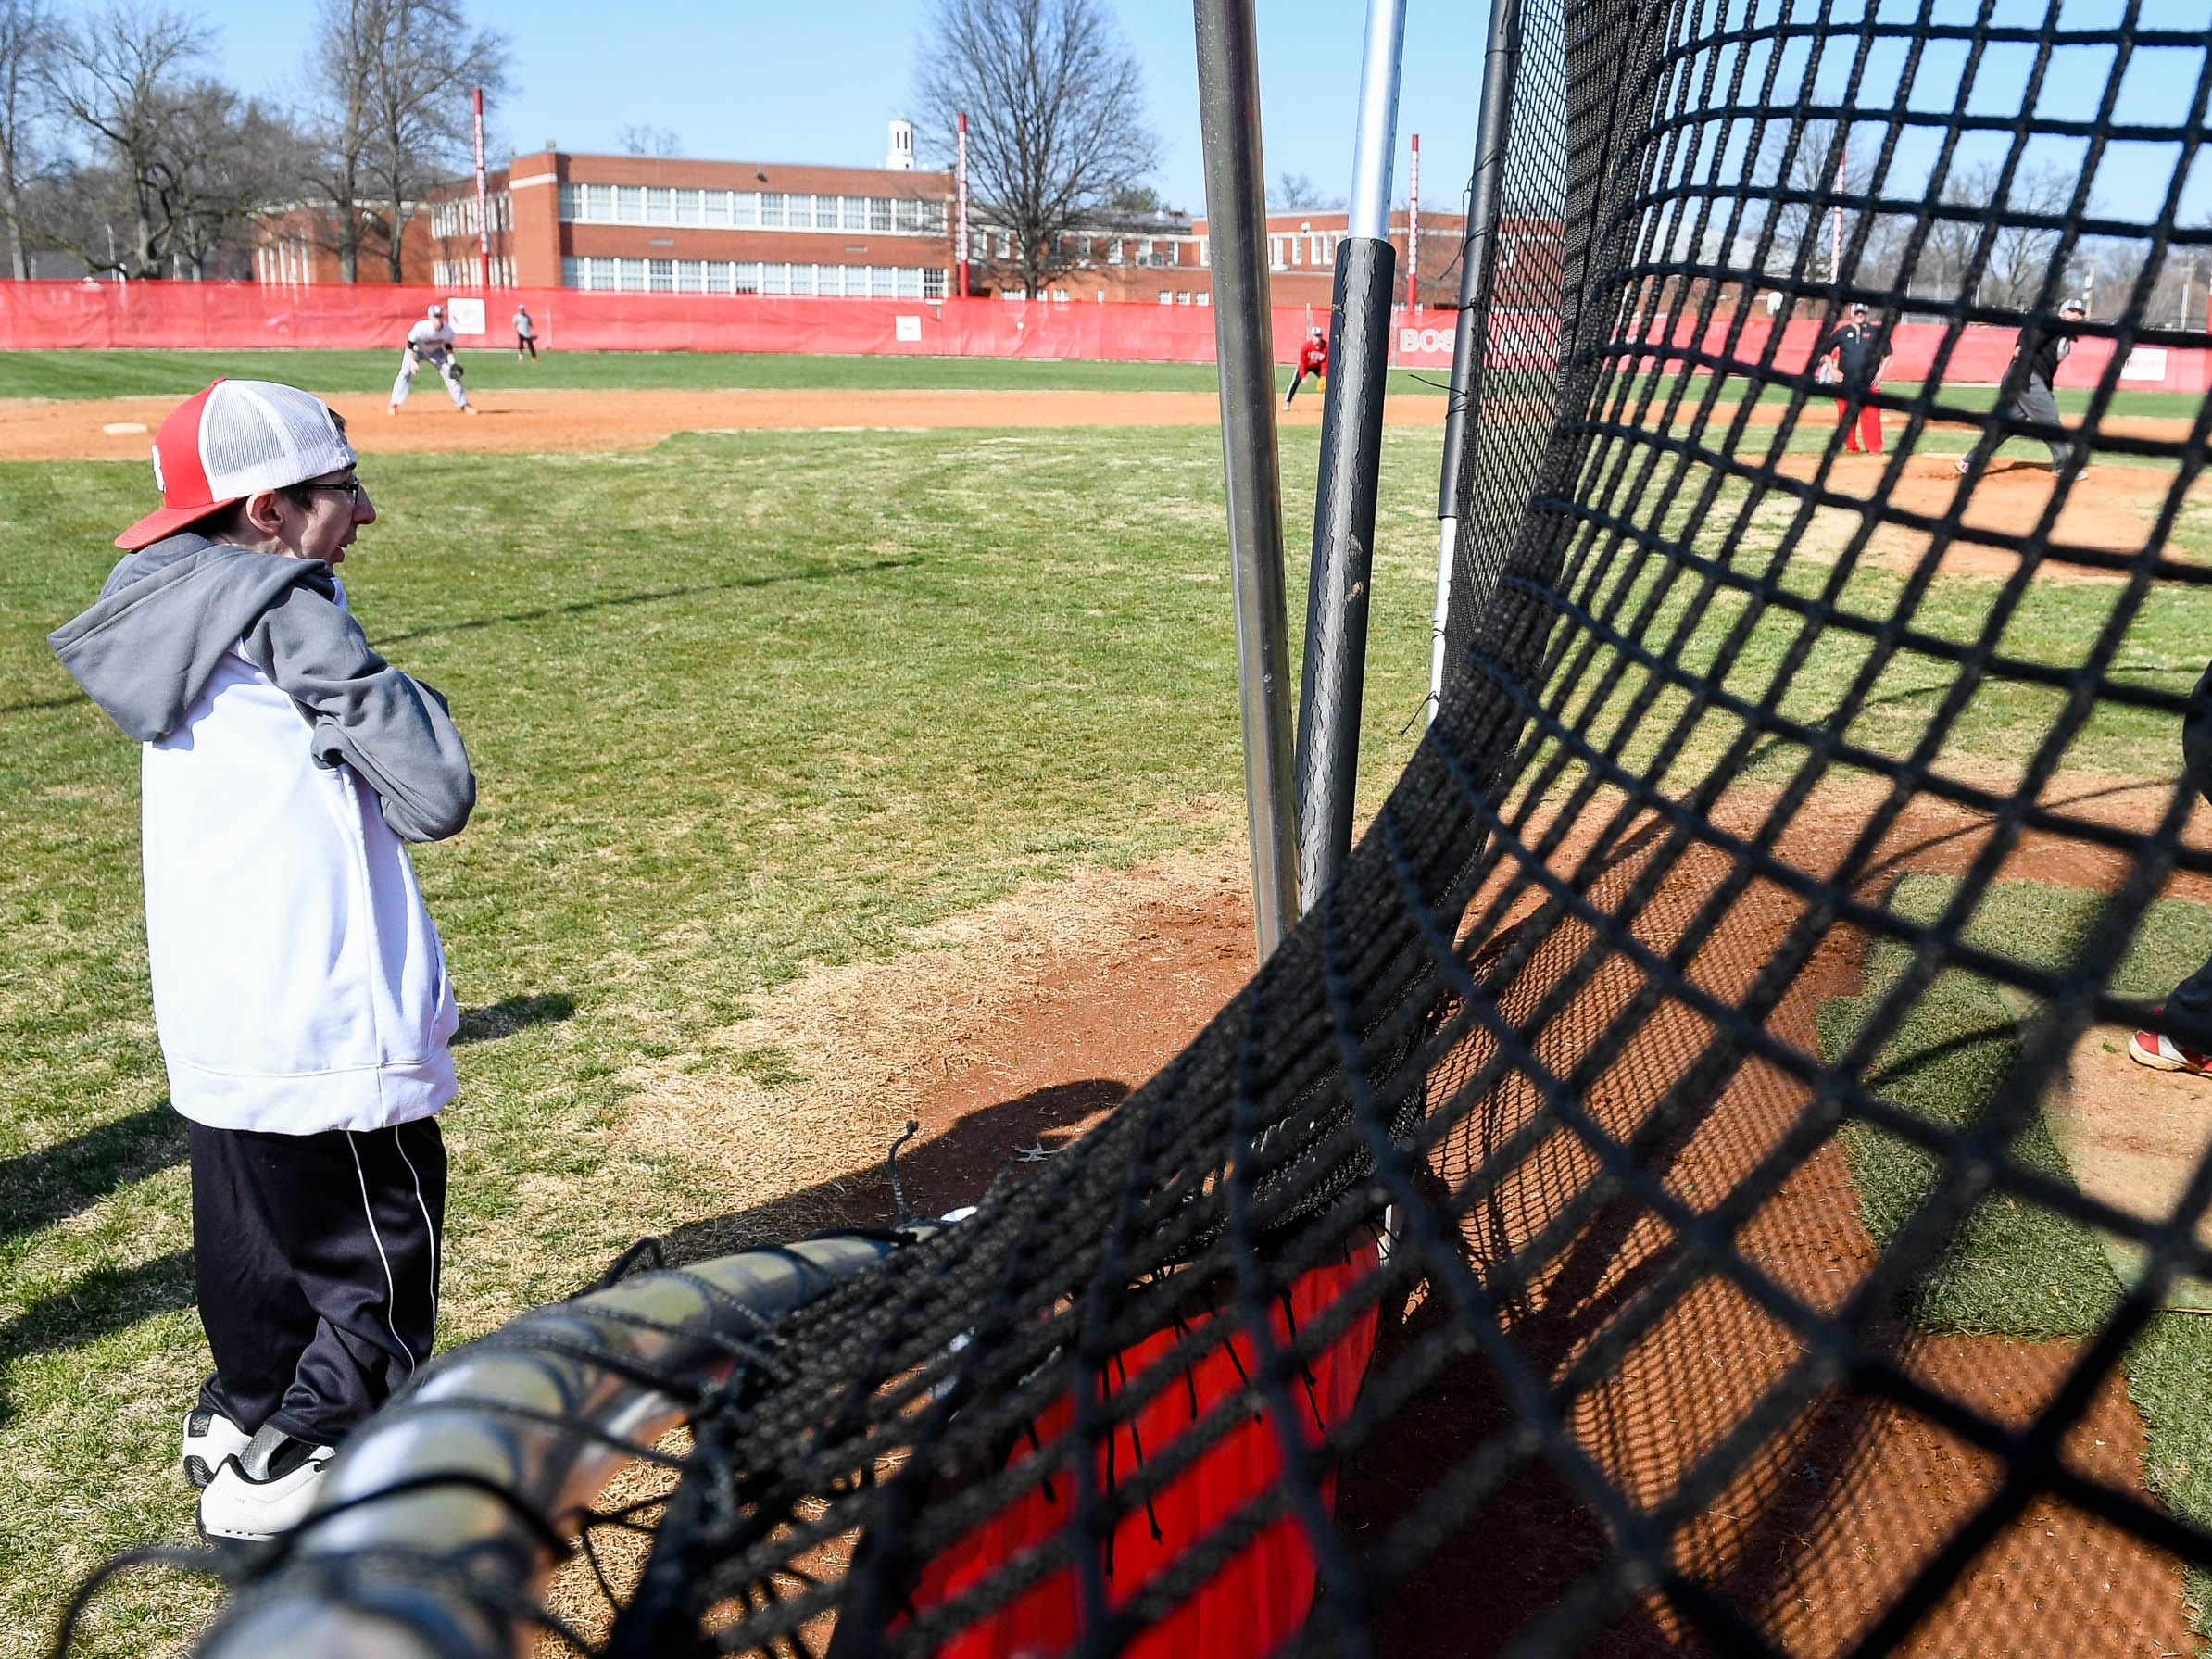 Wade Conway, one of the assistant coaches for the Bosse High School baseball team, watches batting practice in March of 2018.